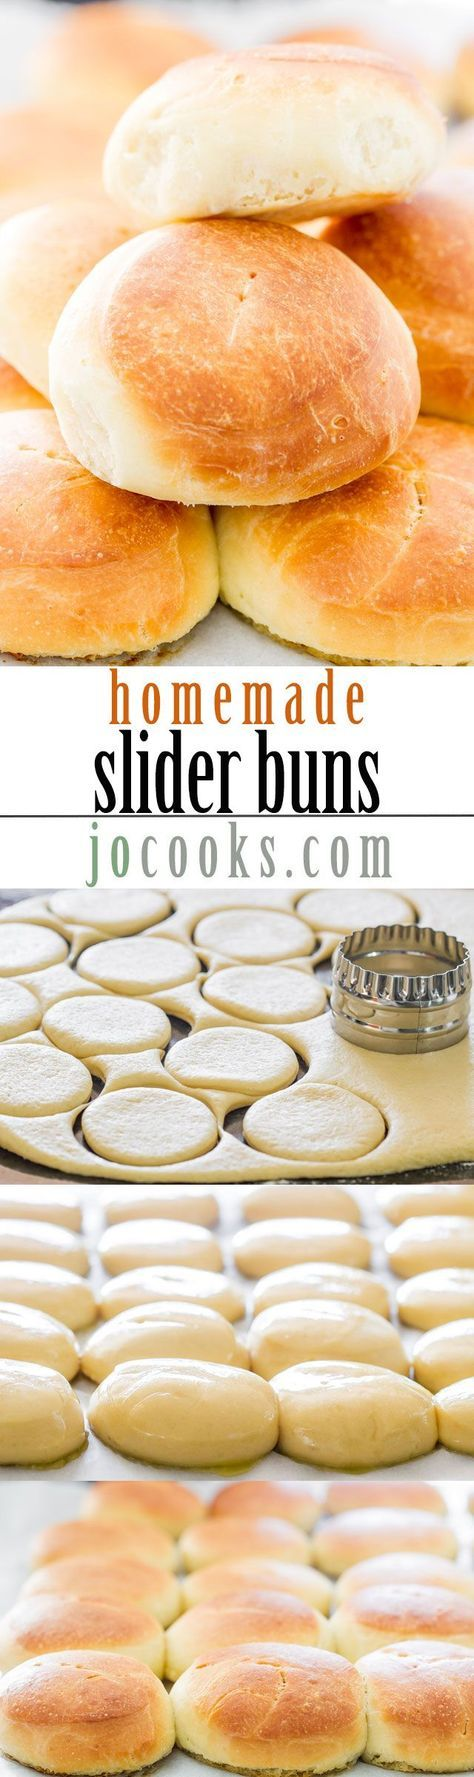 Homemade Slider Buns